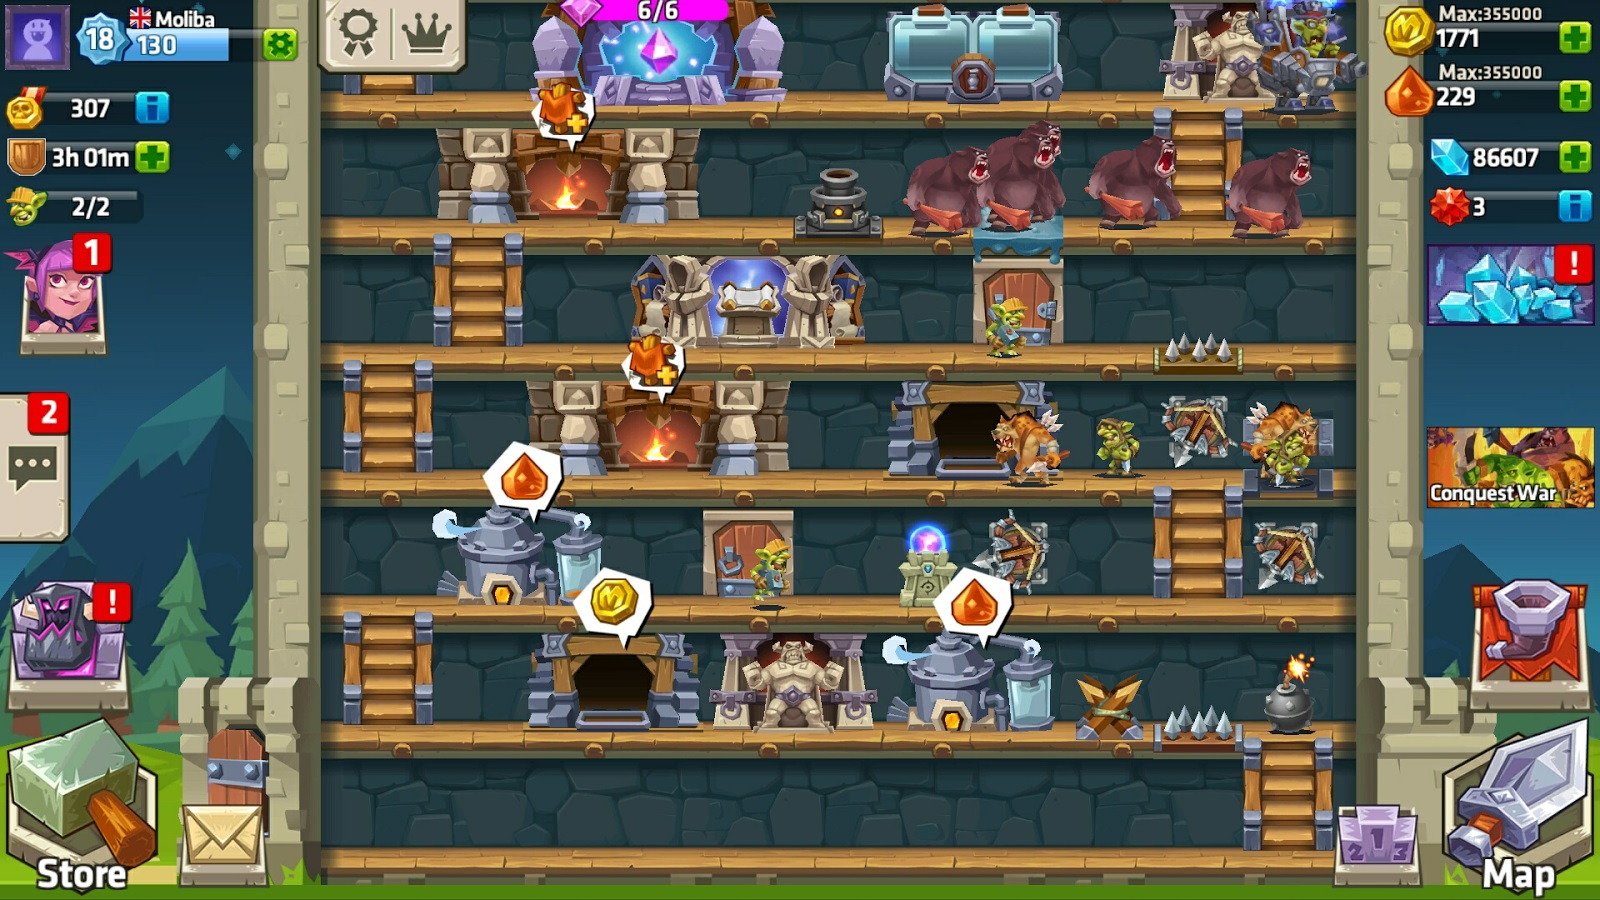 Monster Castle blends strategy, development, and tower defence on iOS and Android [Sponsored]